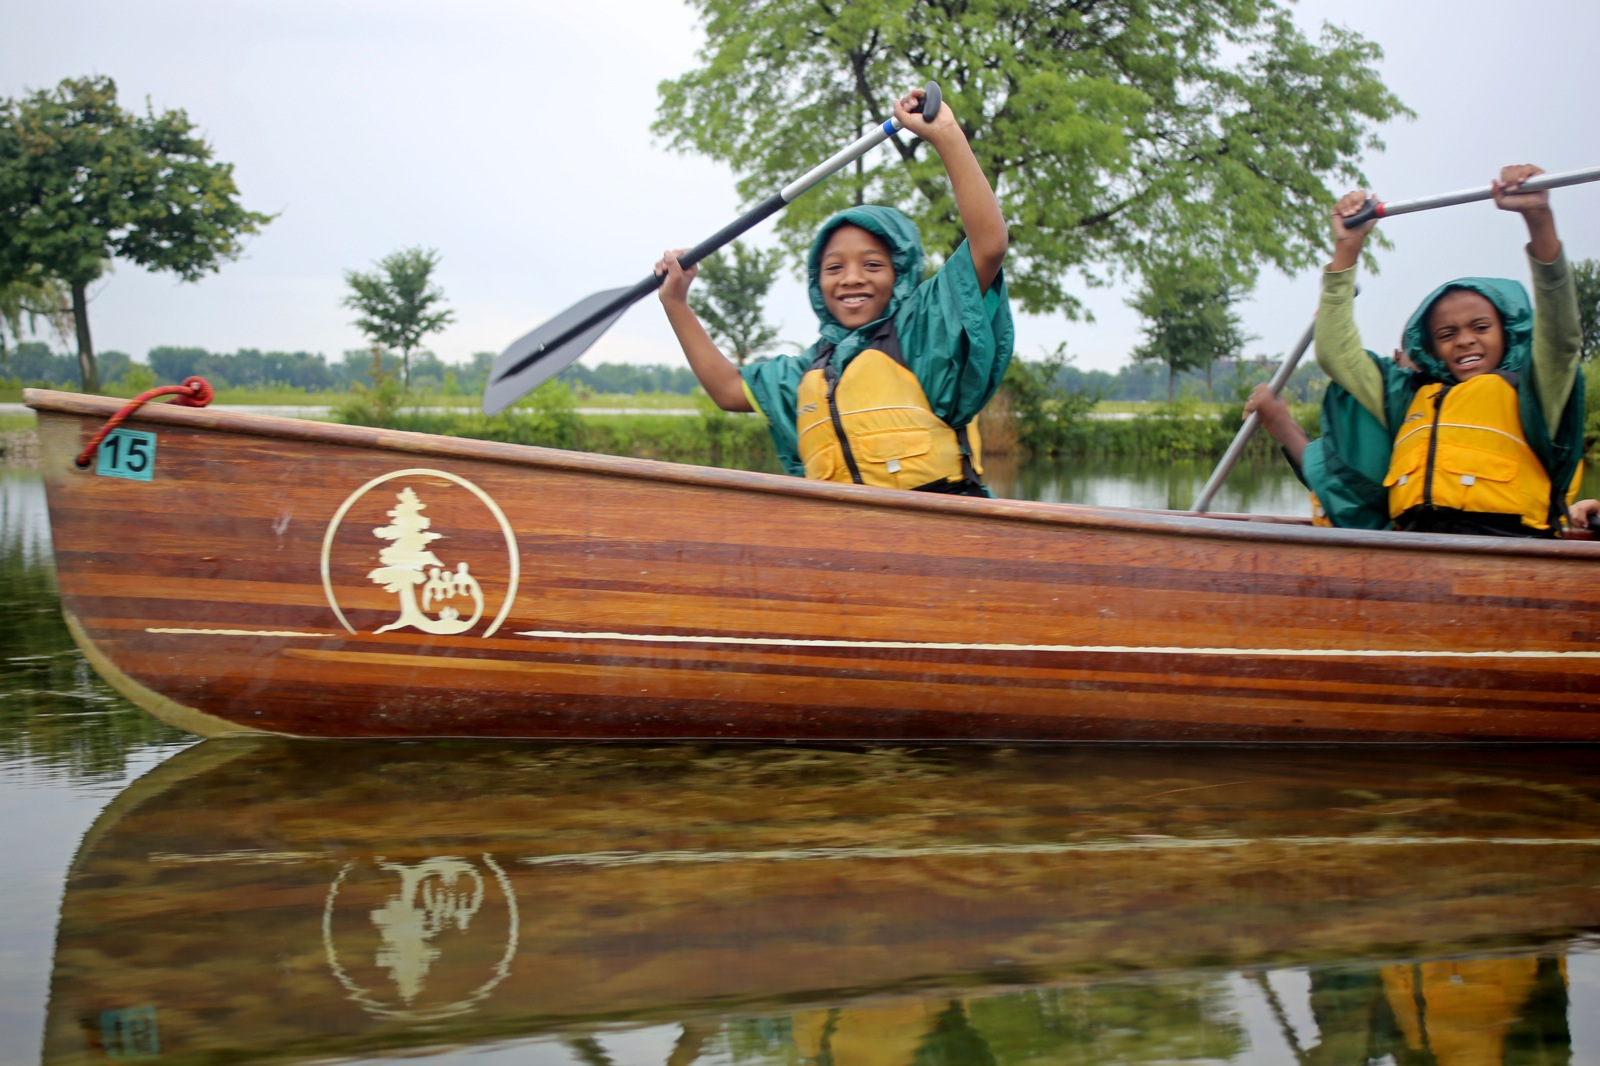 two young boys in the front of the canoe hold their paddles high on a cloudy day